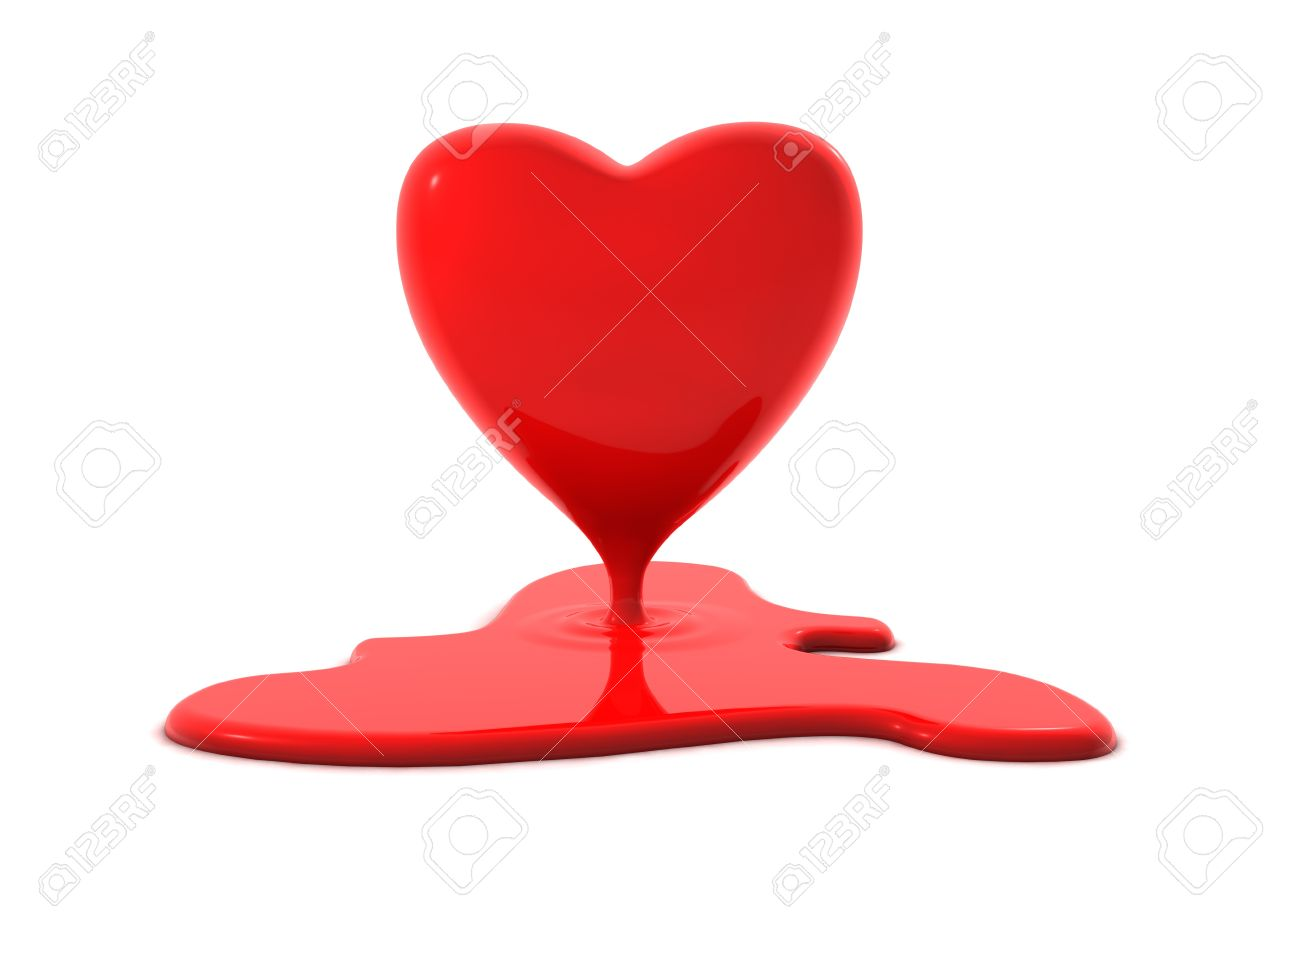 677 Melt Love Stock Vector Illustration And Royalty Free Melt Love.